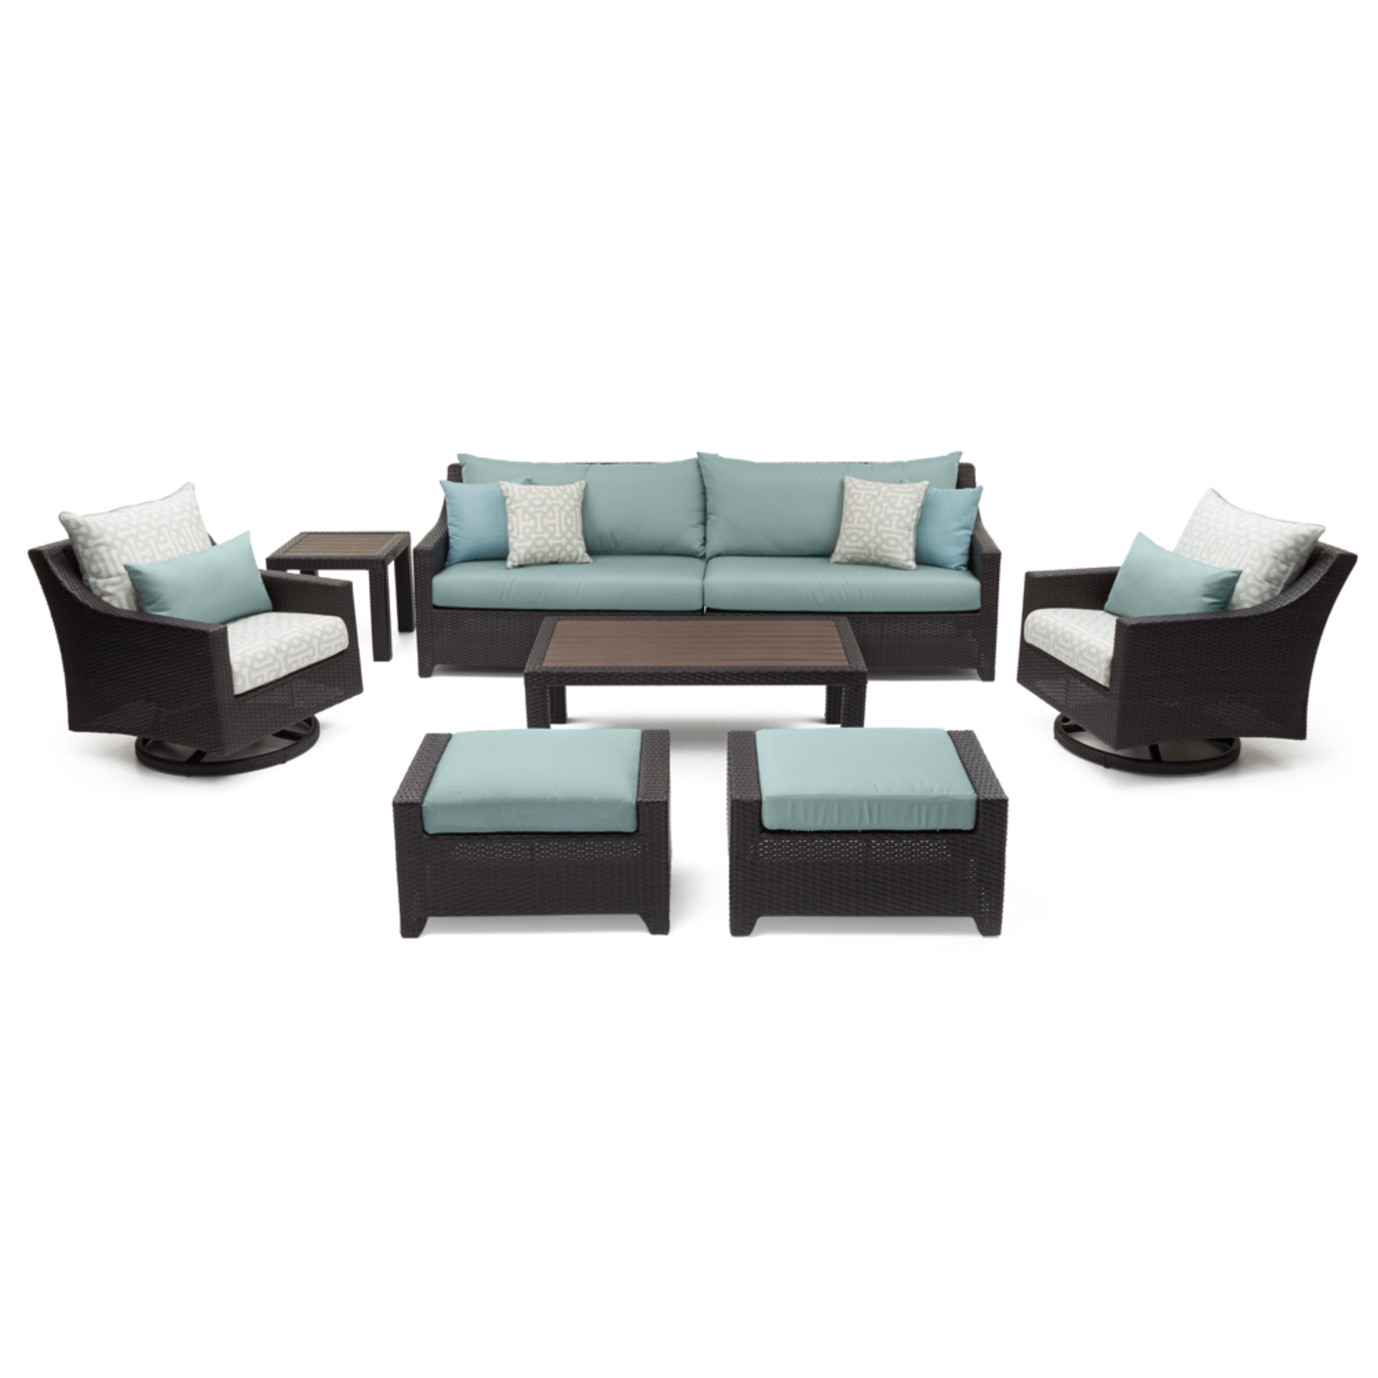 Deco™ 8 Piece Sofa & Club Chair Set - Spa Blue Design